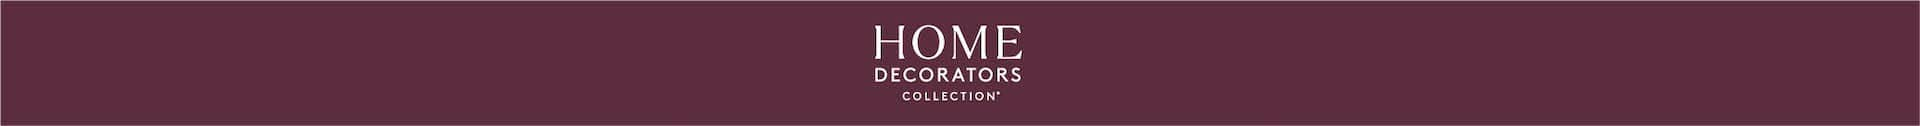 Home decorators collections